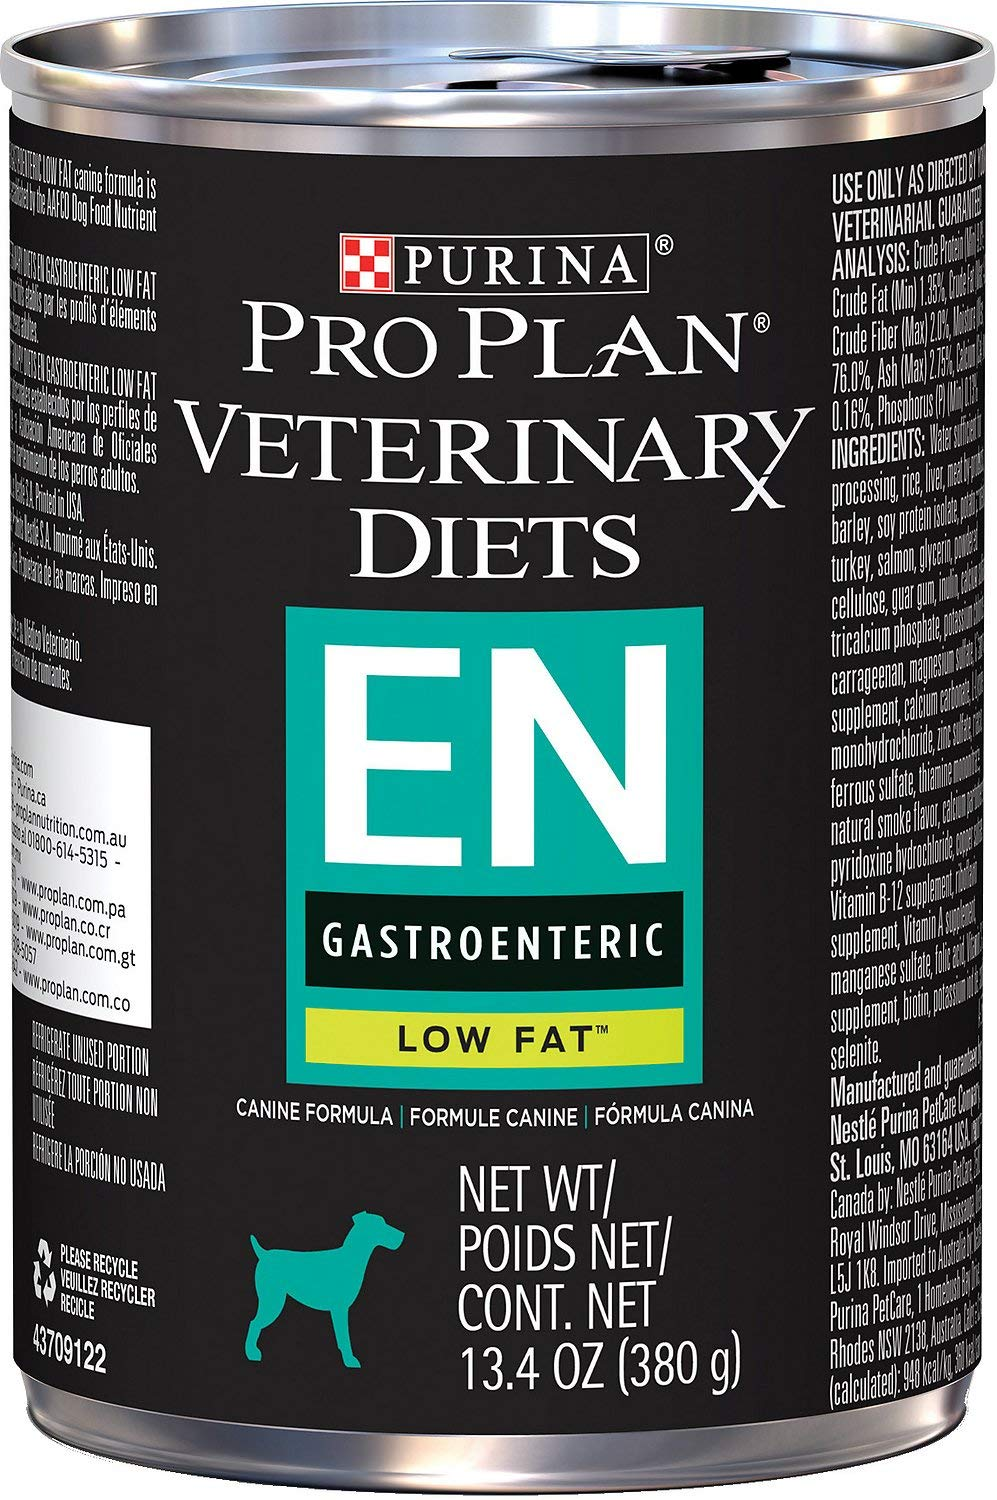 Purina EN Gastroenteric Low Fat Dog Food 12 13.4 oz cans by Purina Pro Plan